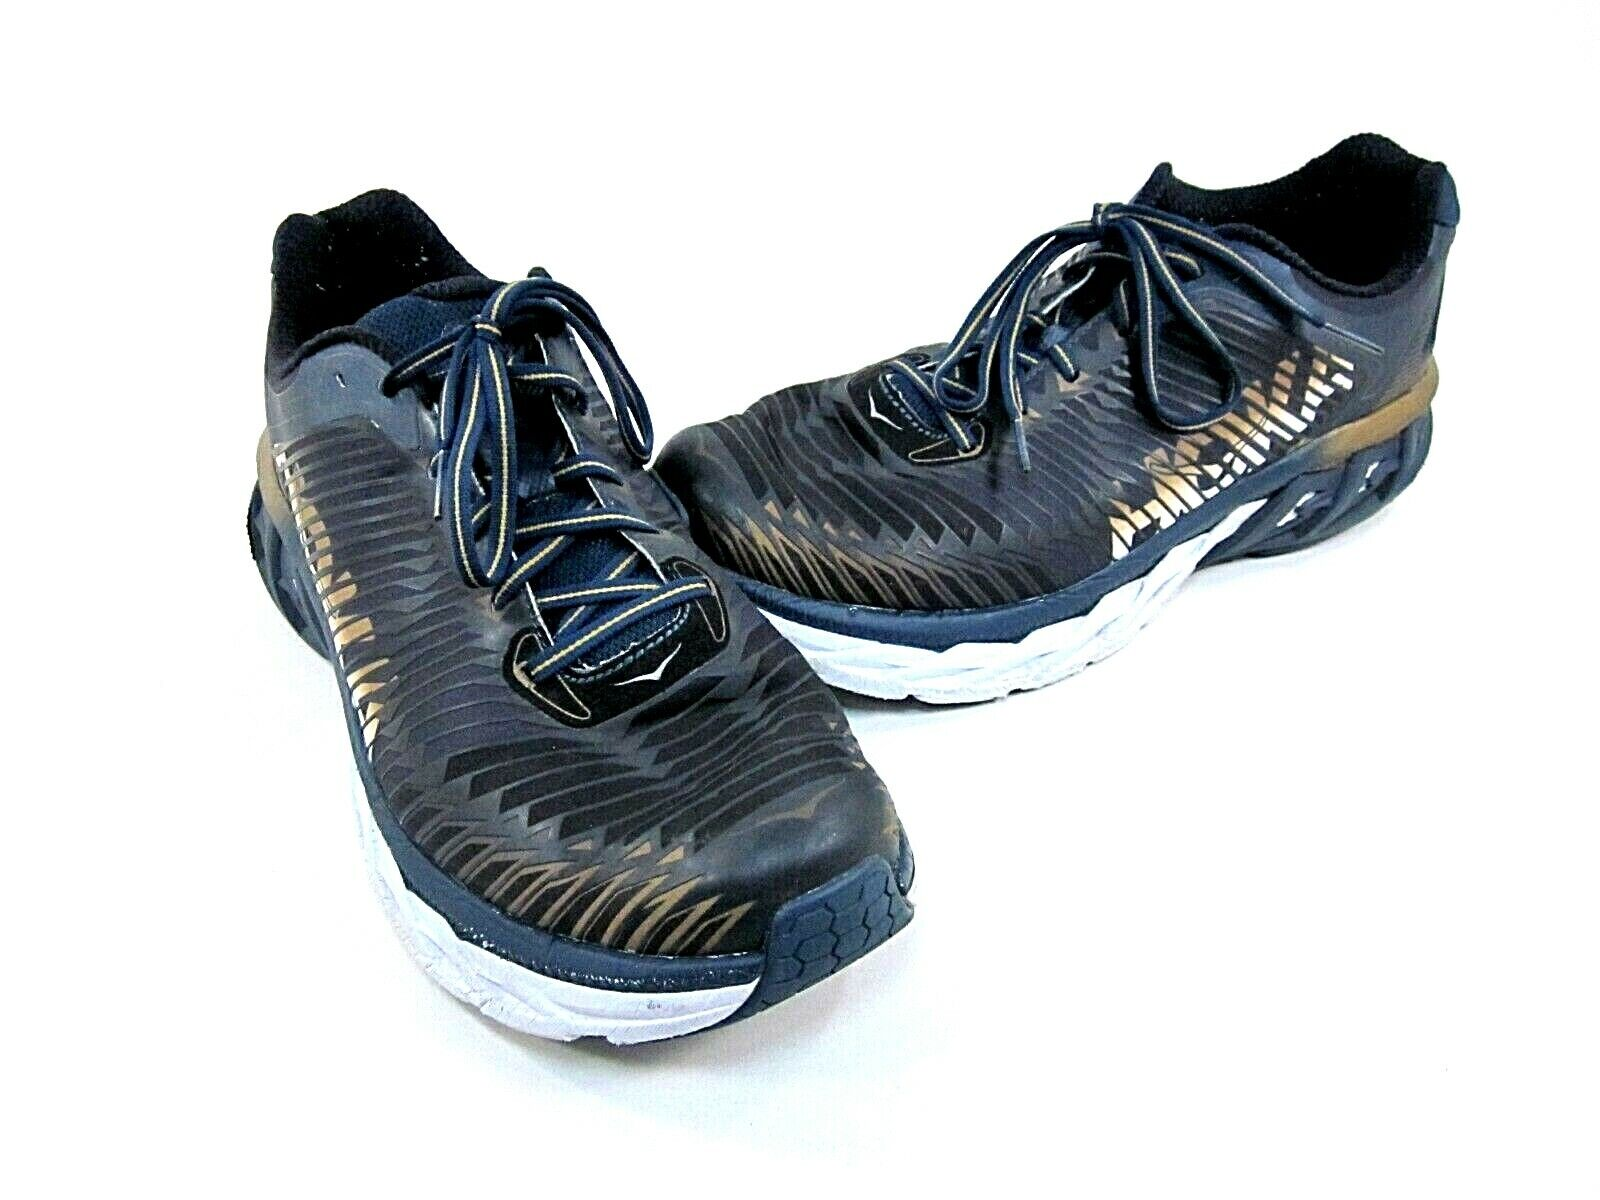 HOKA ONE ONE MEN'S ARAHI RUNNING SHOE, NAVY gold, US 13 MEDIUM, PRE-OWNED